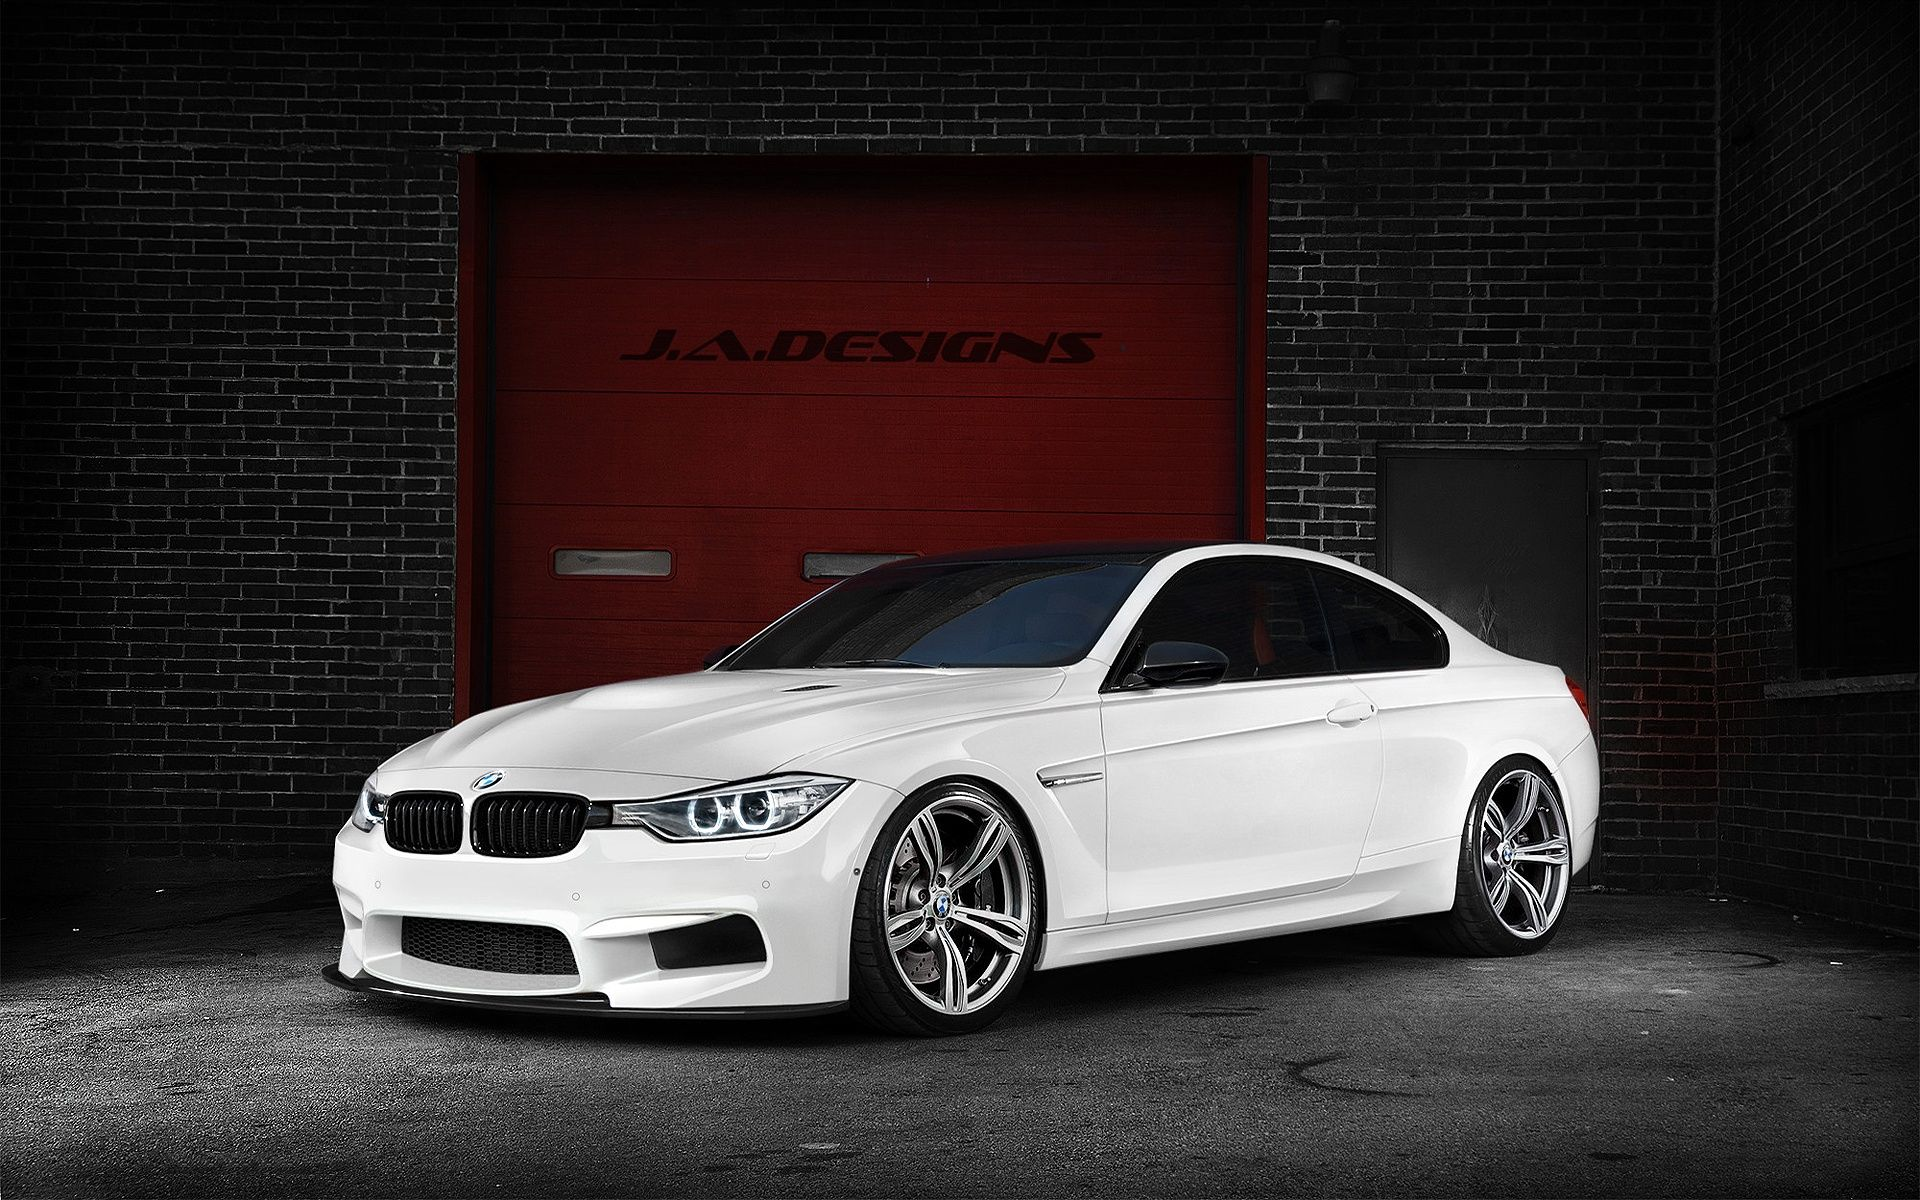 Bmw m4 coupe and convertible f82 and f83 for sale bmwm4 bmwm4forsale